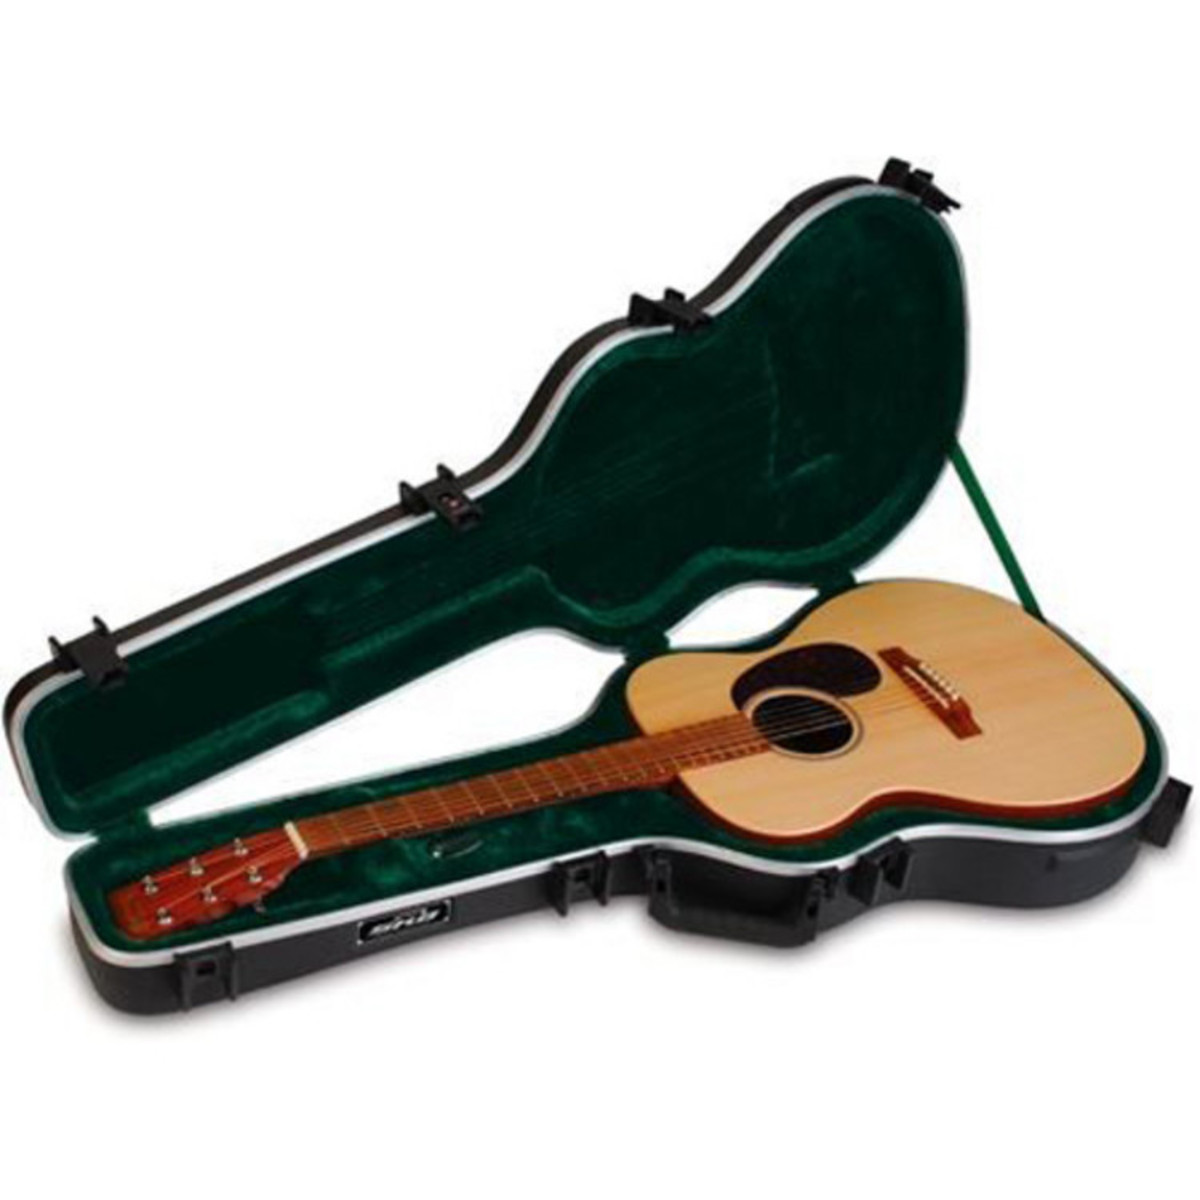 skb 000 size acoustic hardshell guitar case at gear4music. Black Bedroom Furniture Sets. Home Design Ideas